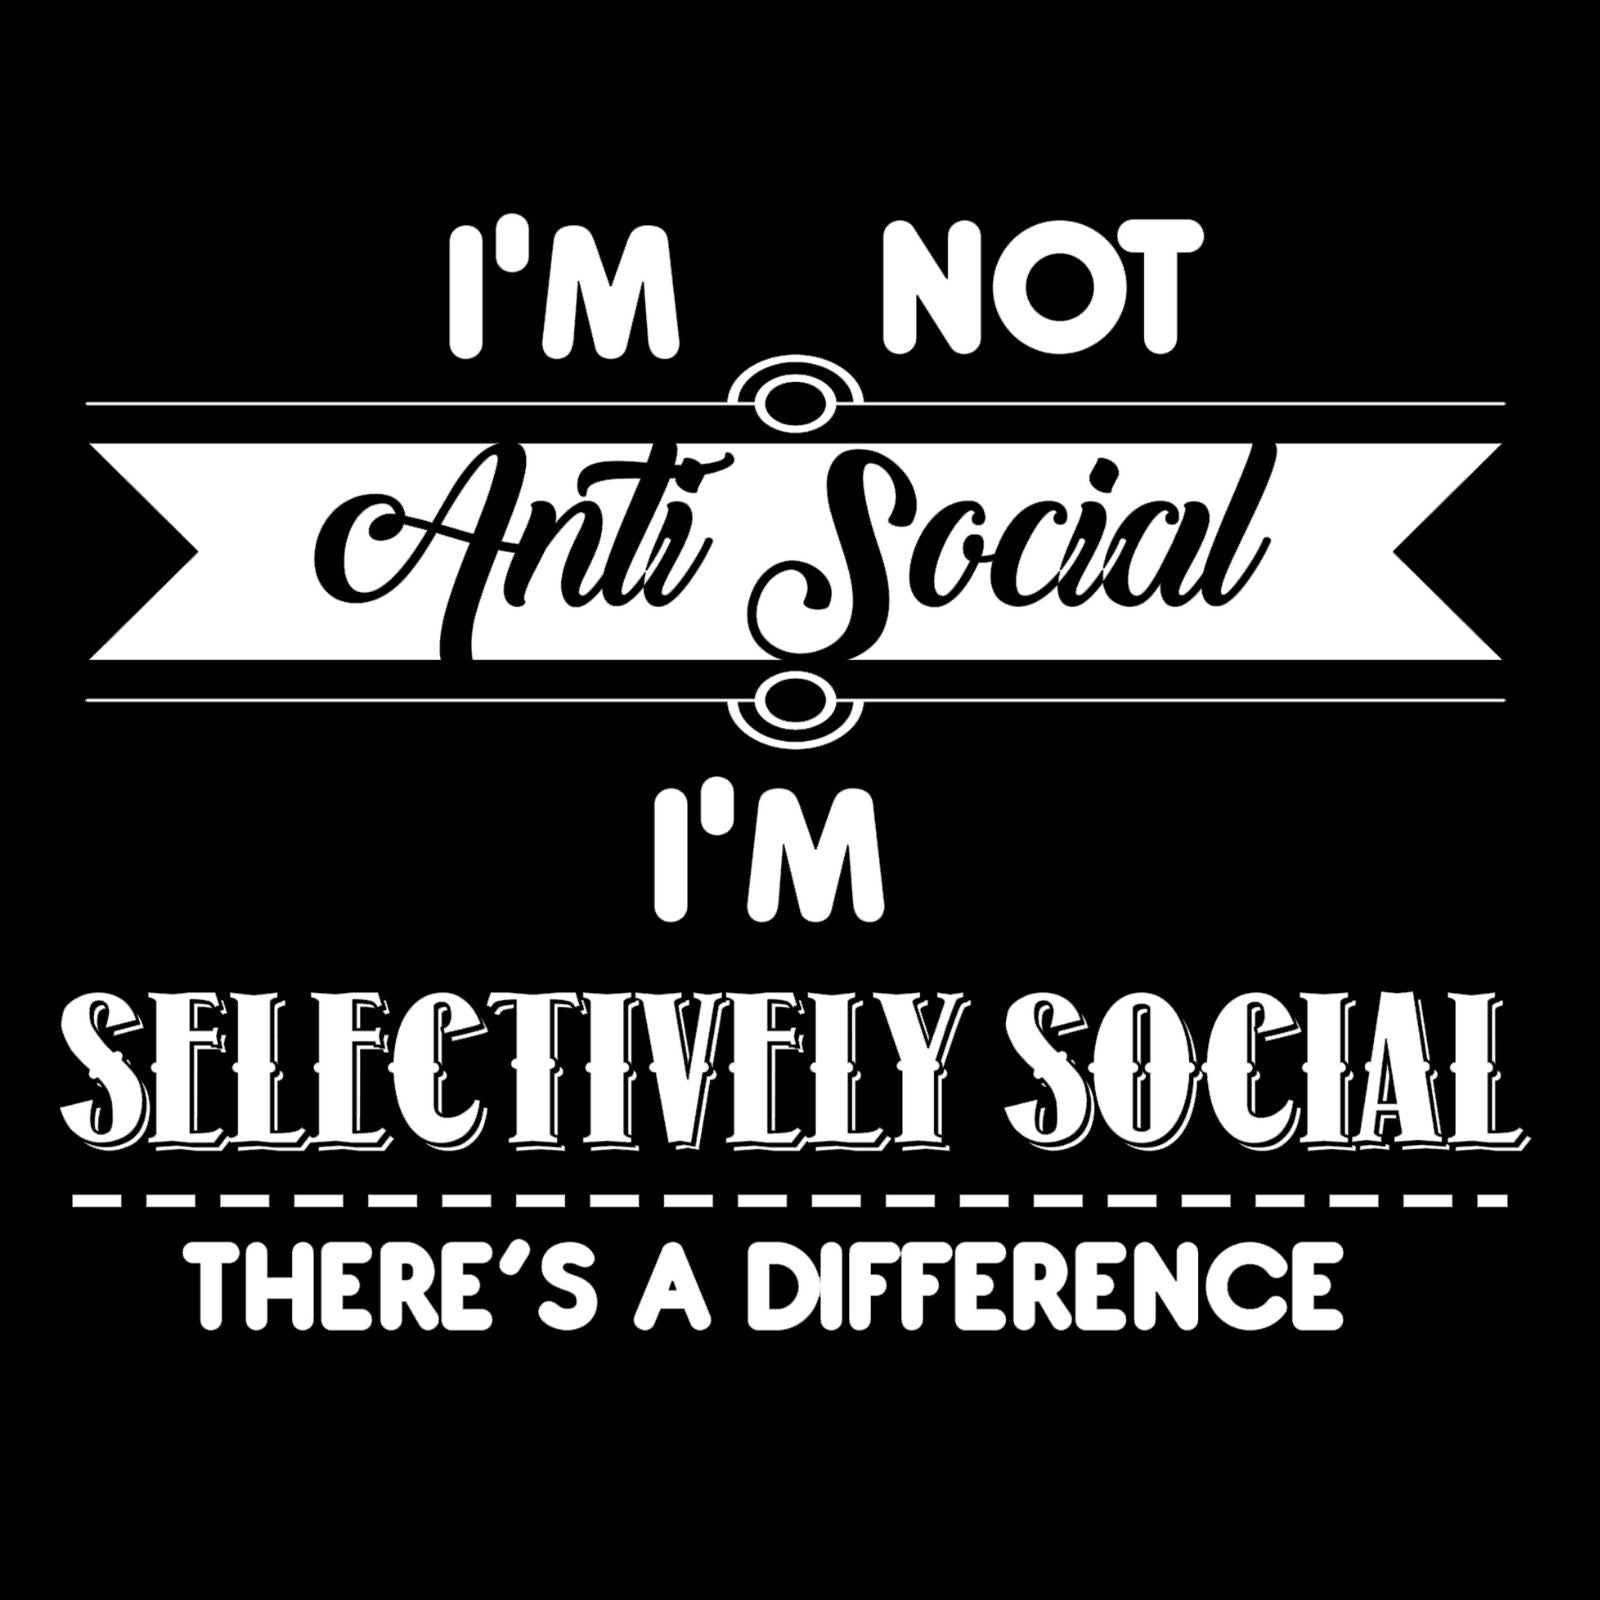 I'm Not Anti-SocialI'm Selectively Social There's A Difference - Bastard Graphics